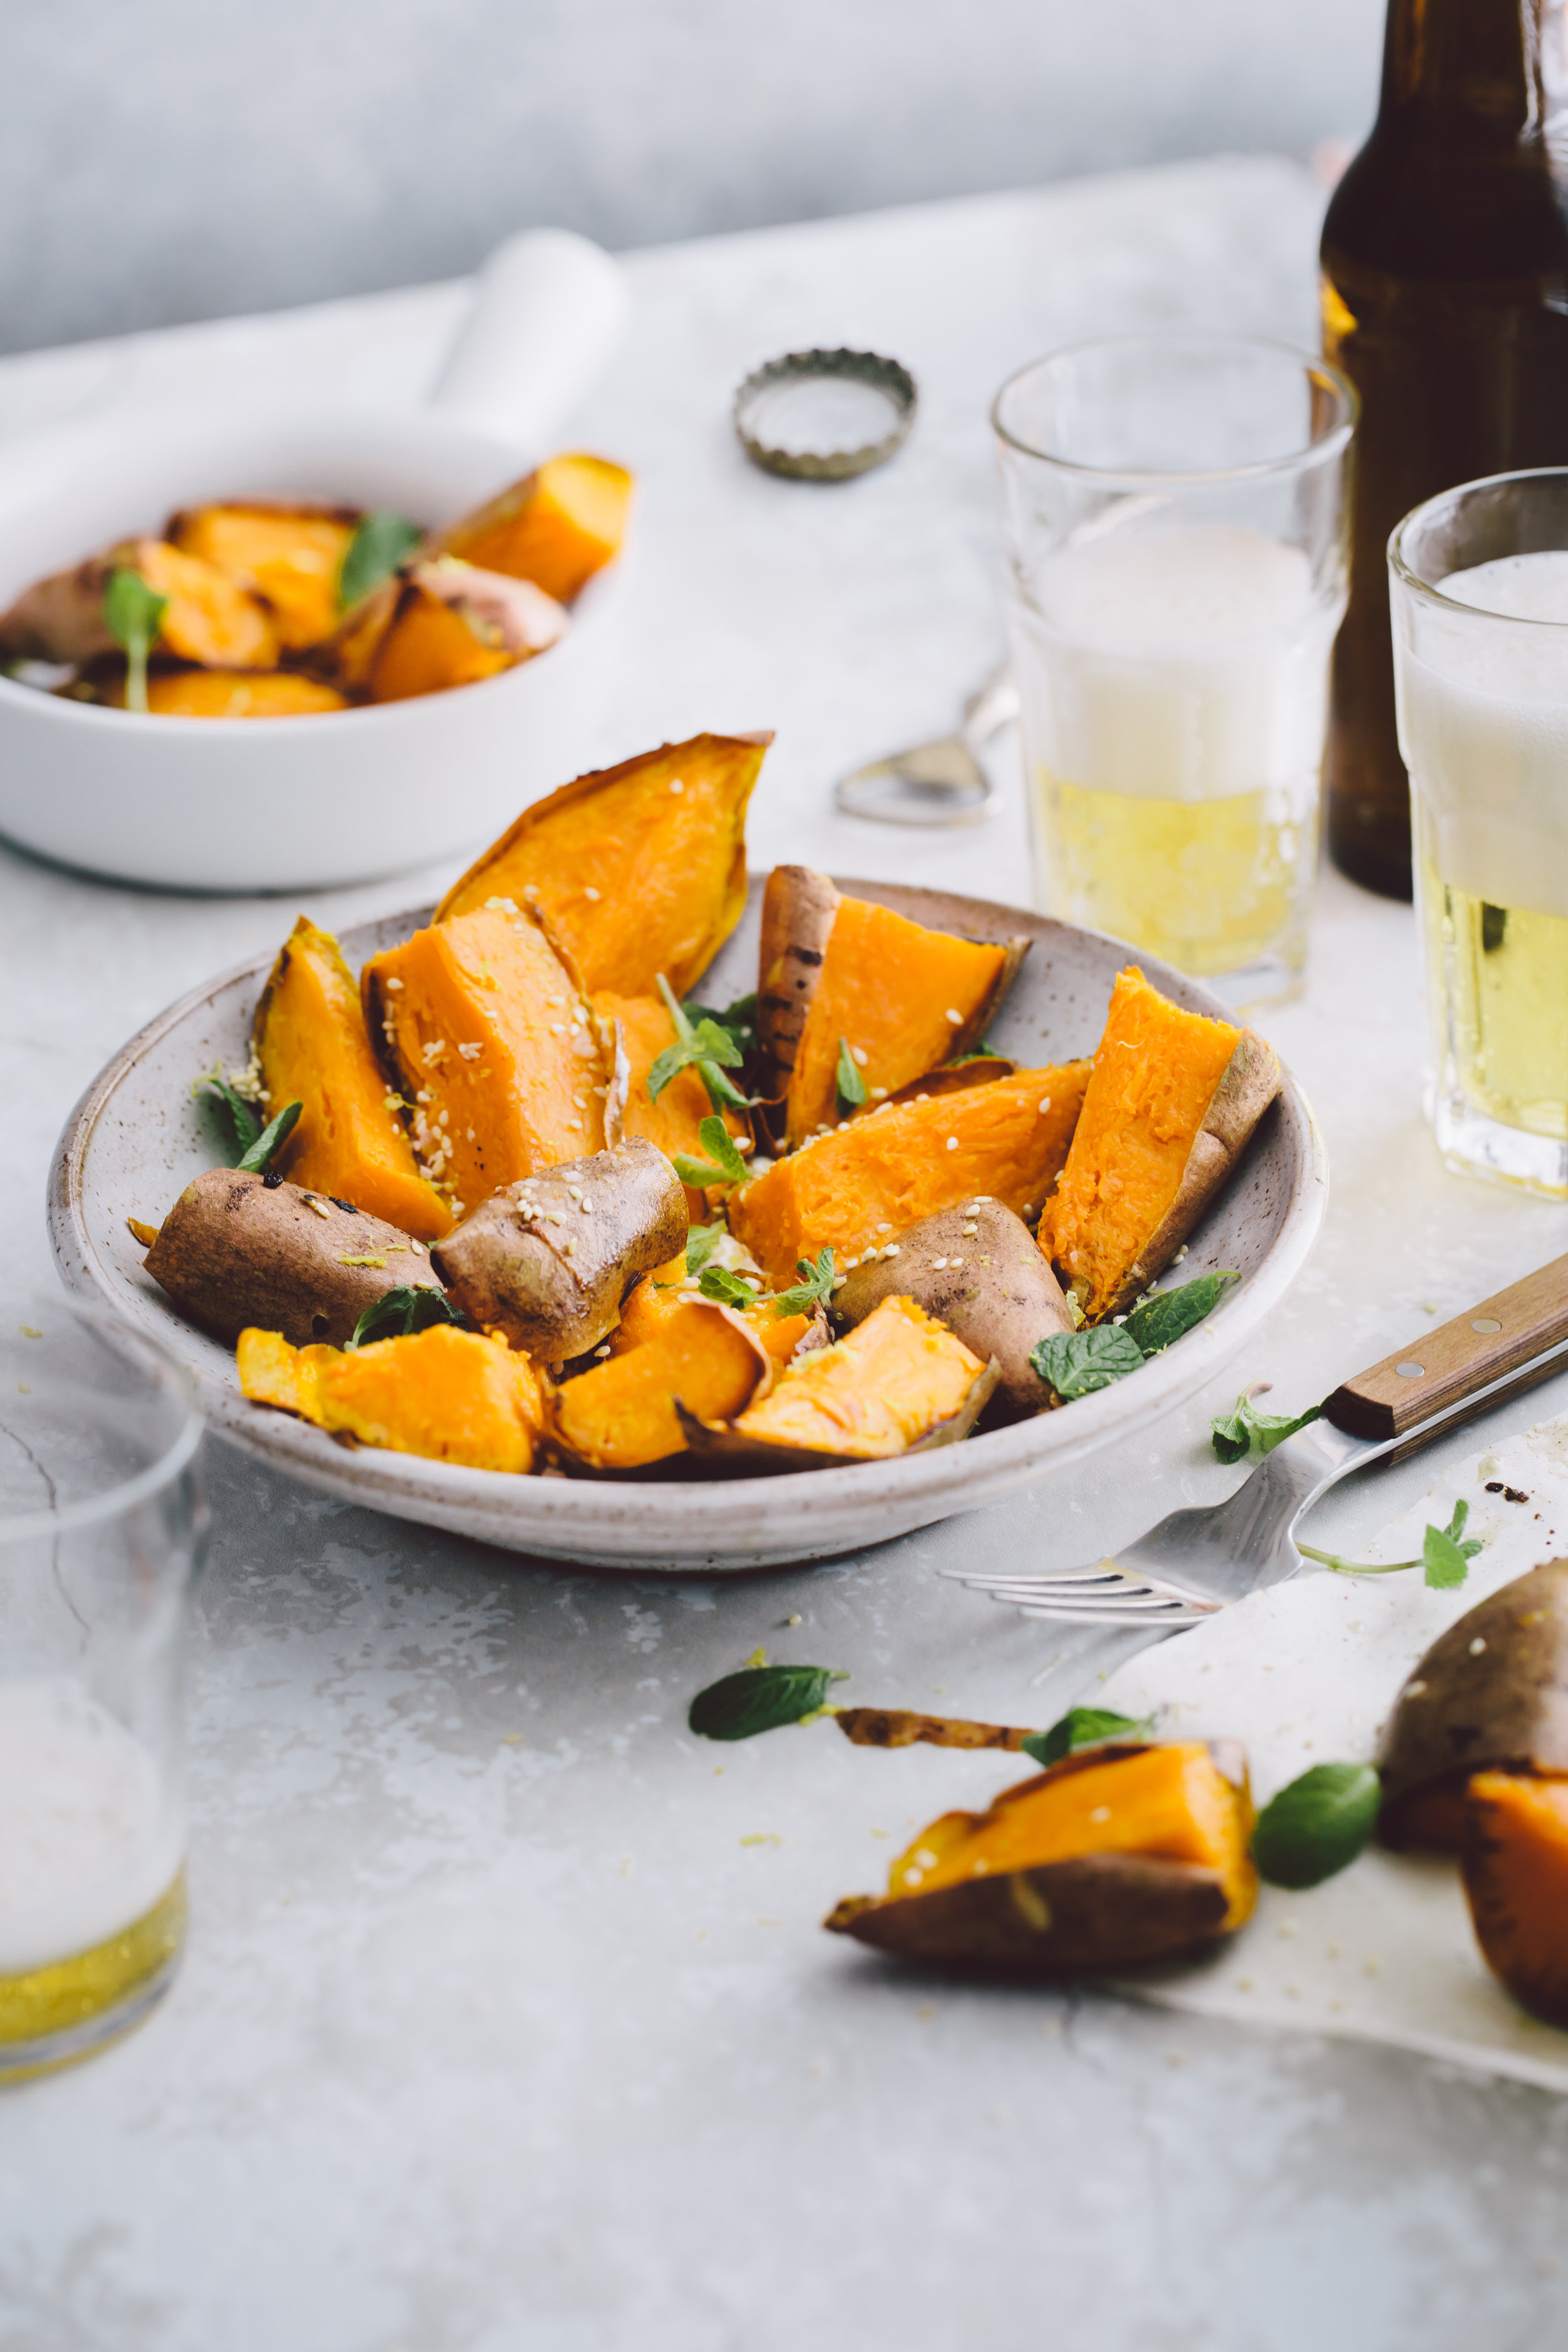 Roasted Sweet Potatoes with mints